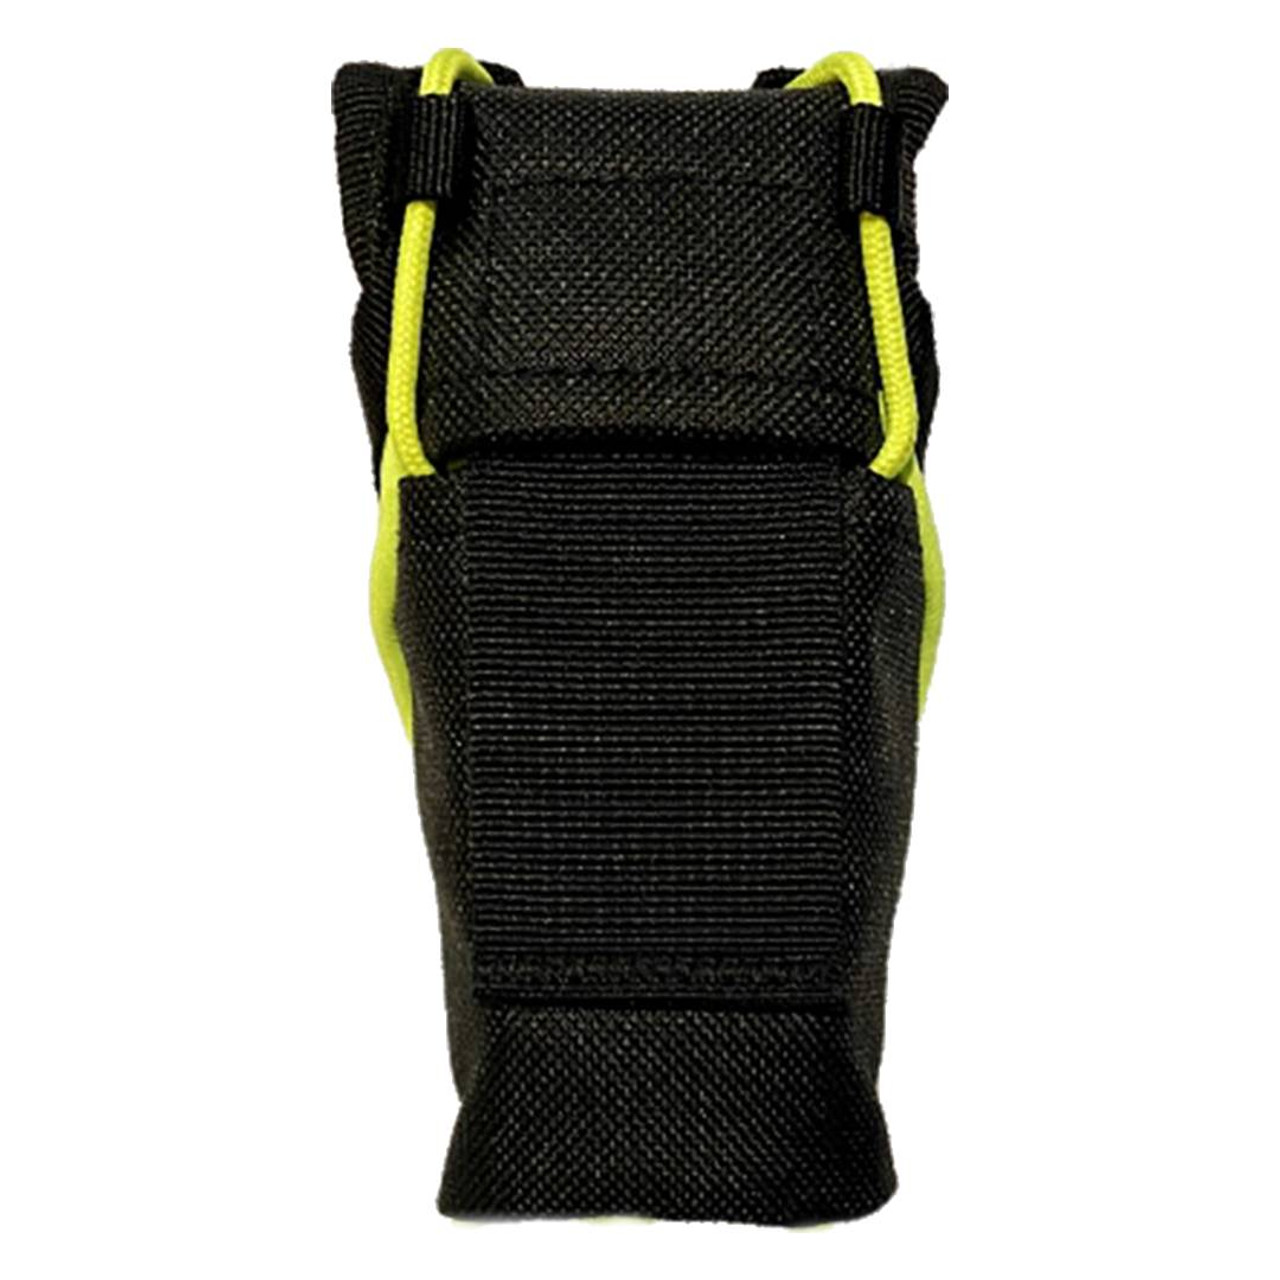 Adjustable Belt Loop - Simply open the Velcro to release the end of the loop fit almost any belt or fixing point.